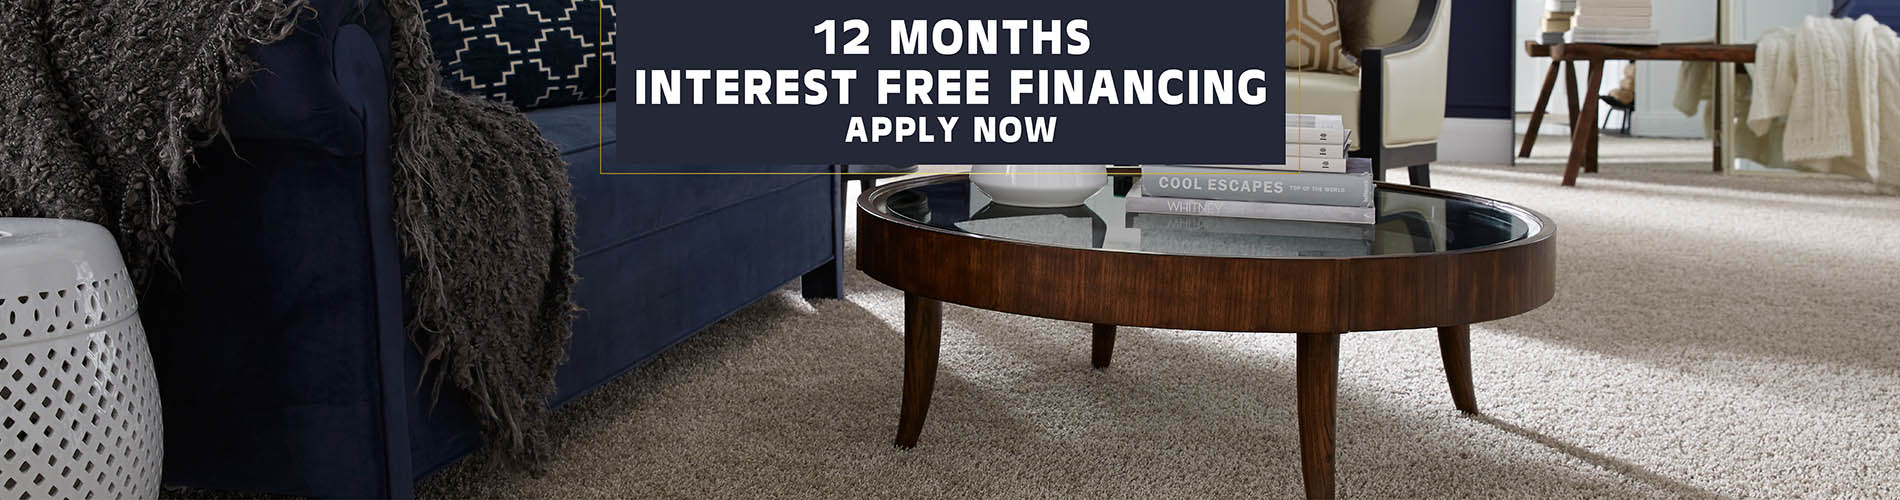 Flooring On Sale Antioch S Largest Selection Of Floor